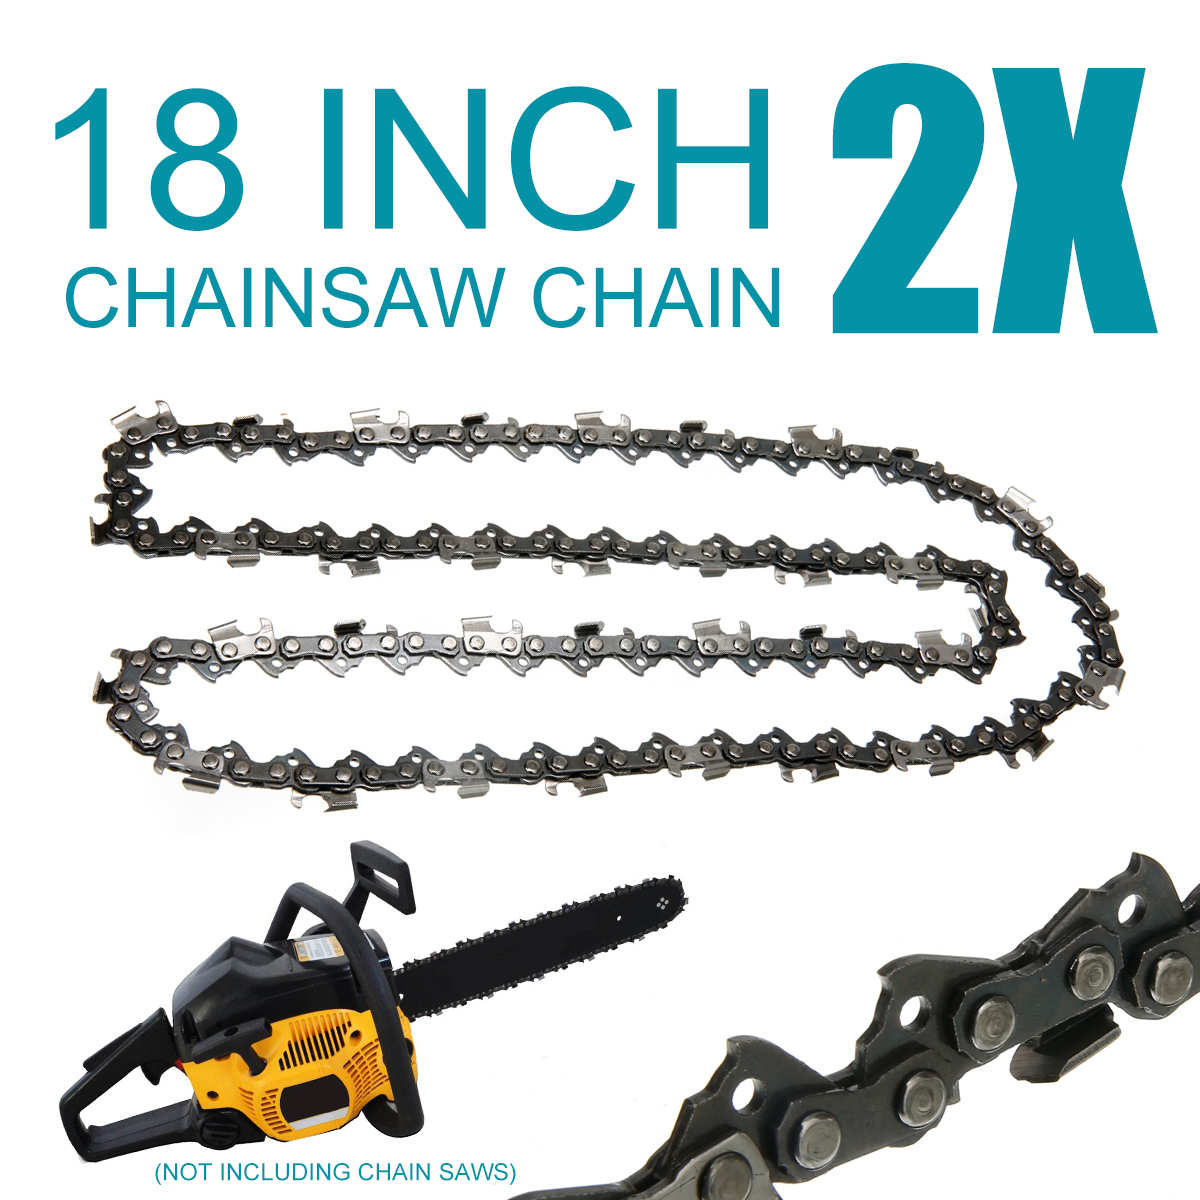 """2pcs 18 inch Chainsaw Saw Chain Blade Pitch .325 """" 0.058 Gauge 72DL Replacement Hardware Tools Chains(China)"""